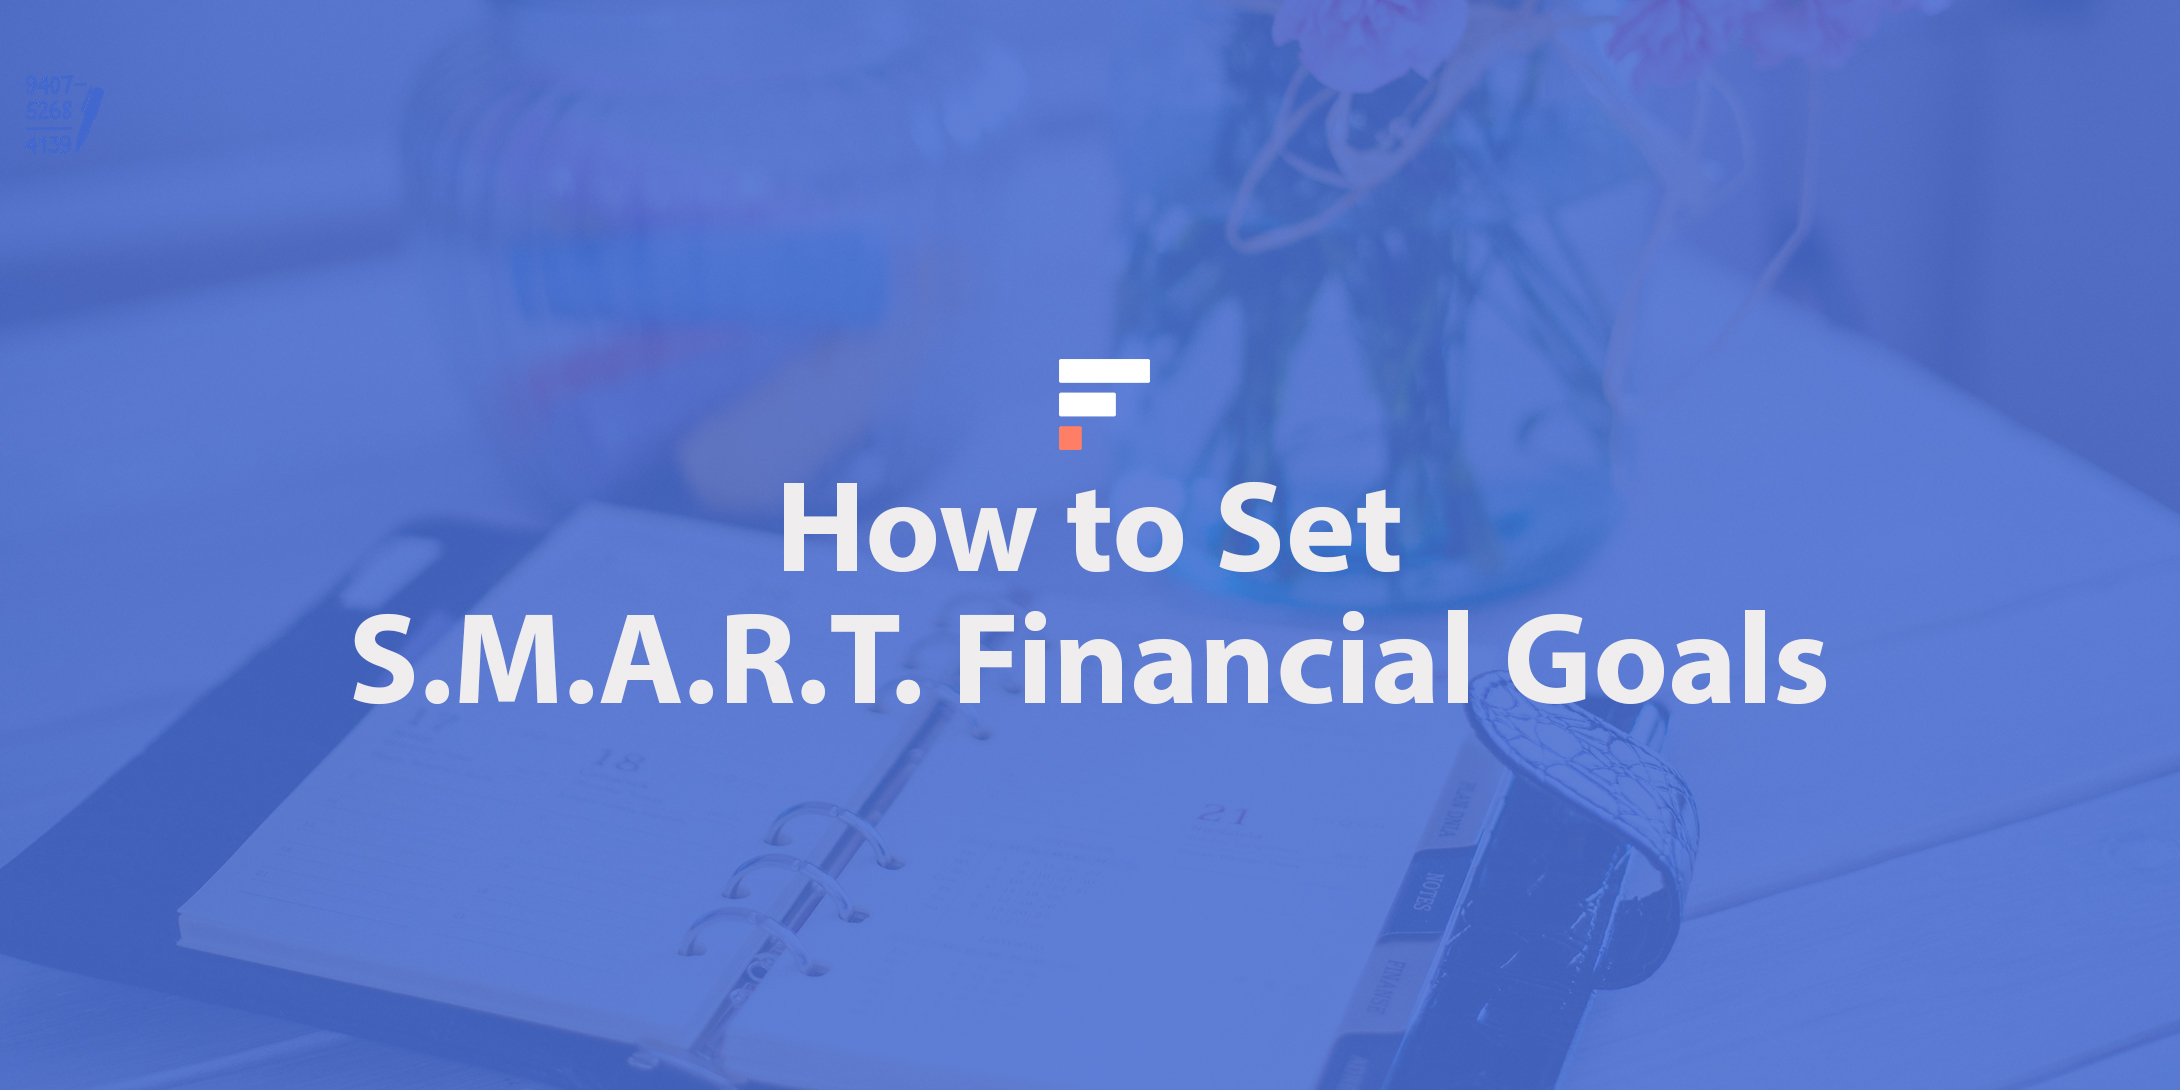 How to Set S.M.A.R.T. Financial Goals (With Examples)